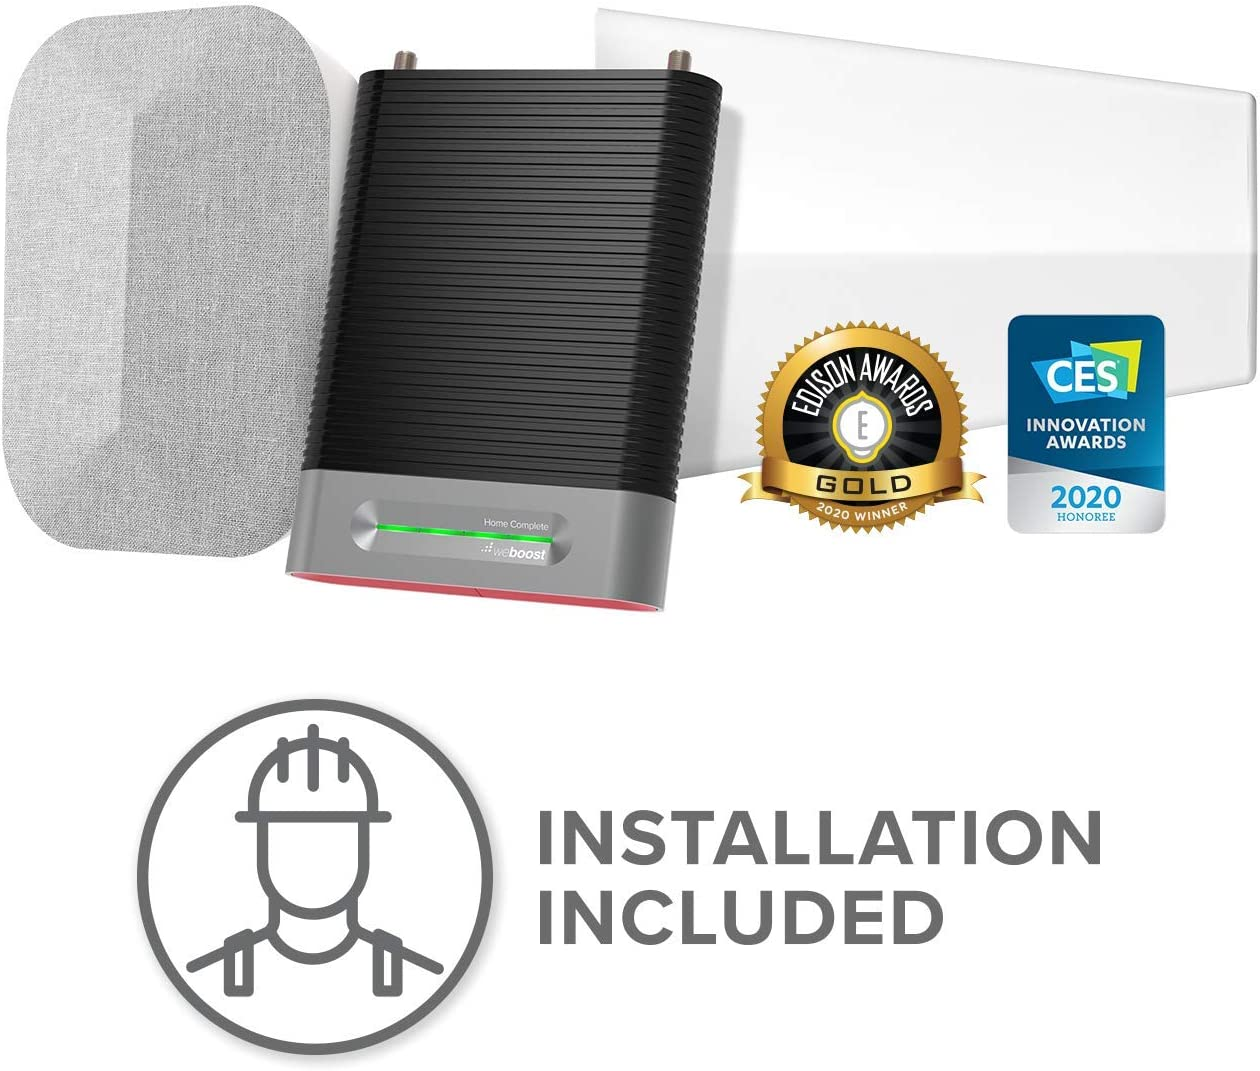 weBoost Installed | Home Complete (474445) Cell Phone Signal Booster Kit | Professional Installation Included | All U.S. Carriers - Verizon, AT&T, T-Mobile, Sprint & More | FCC Approved